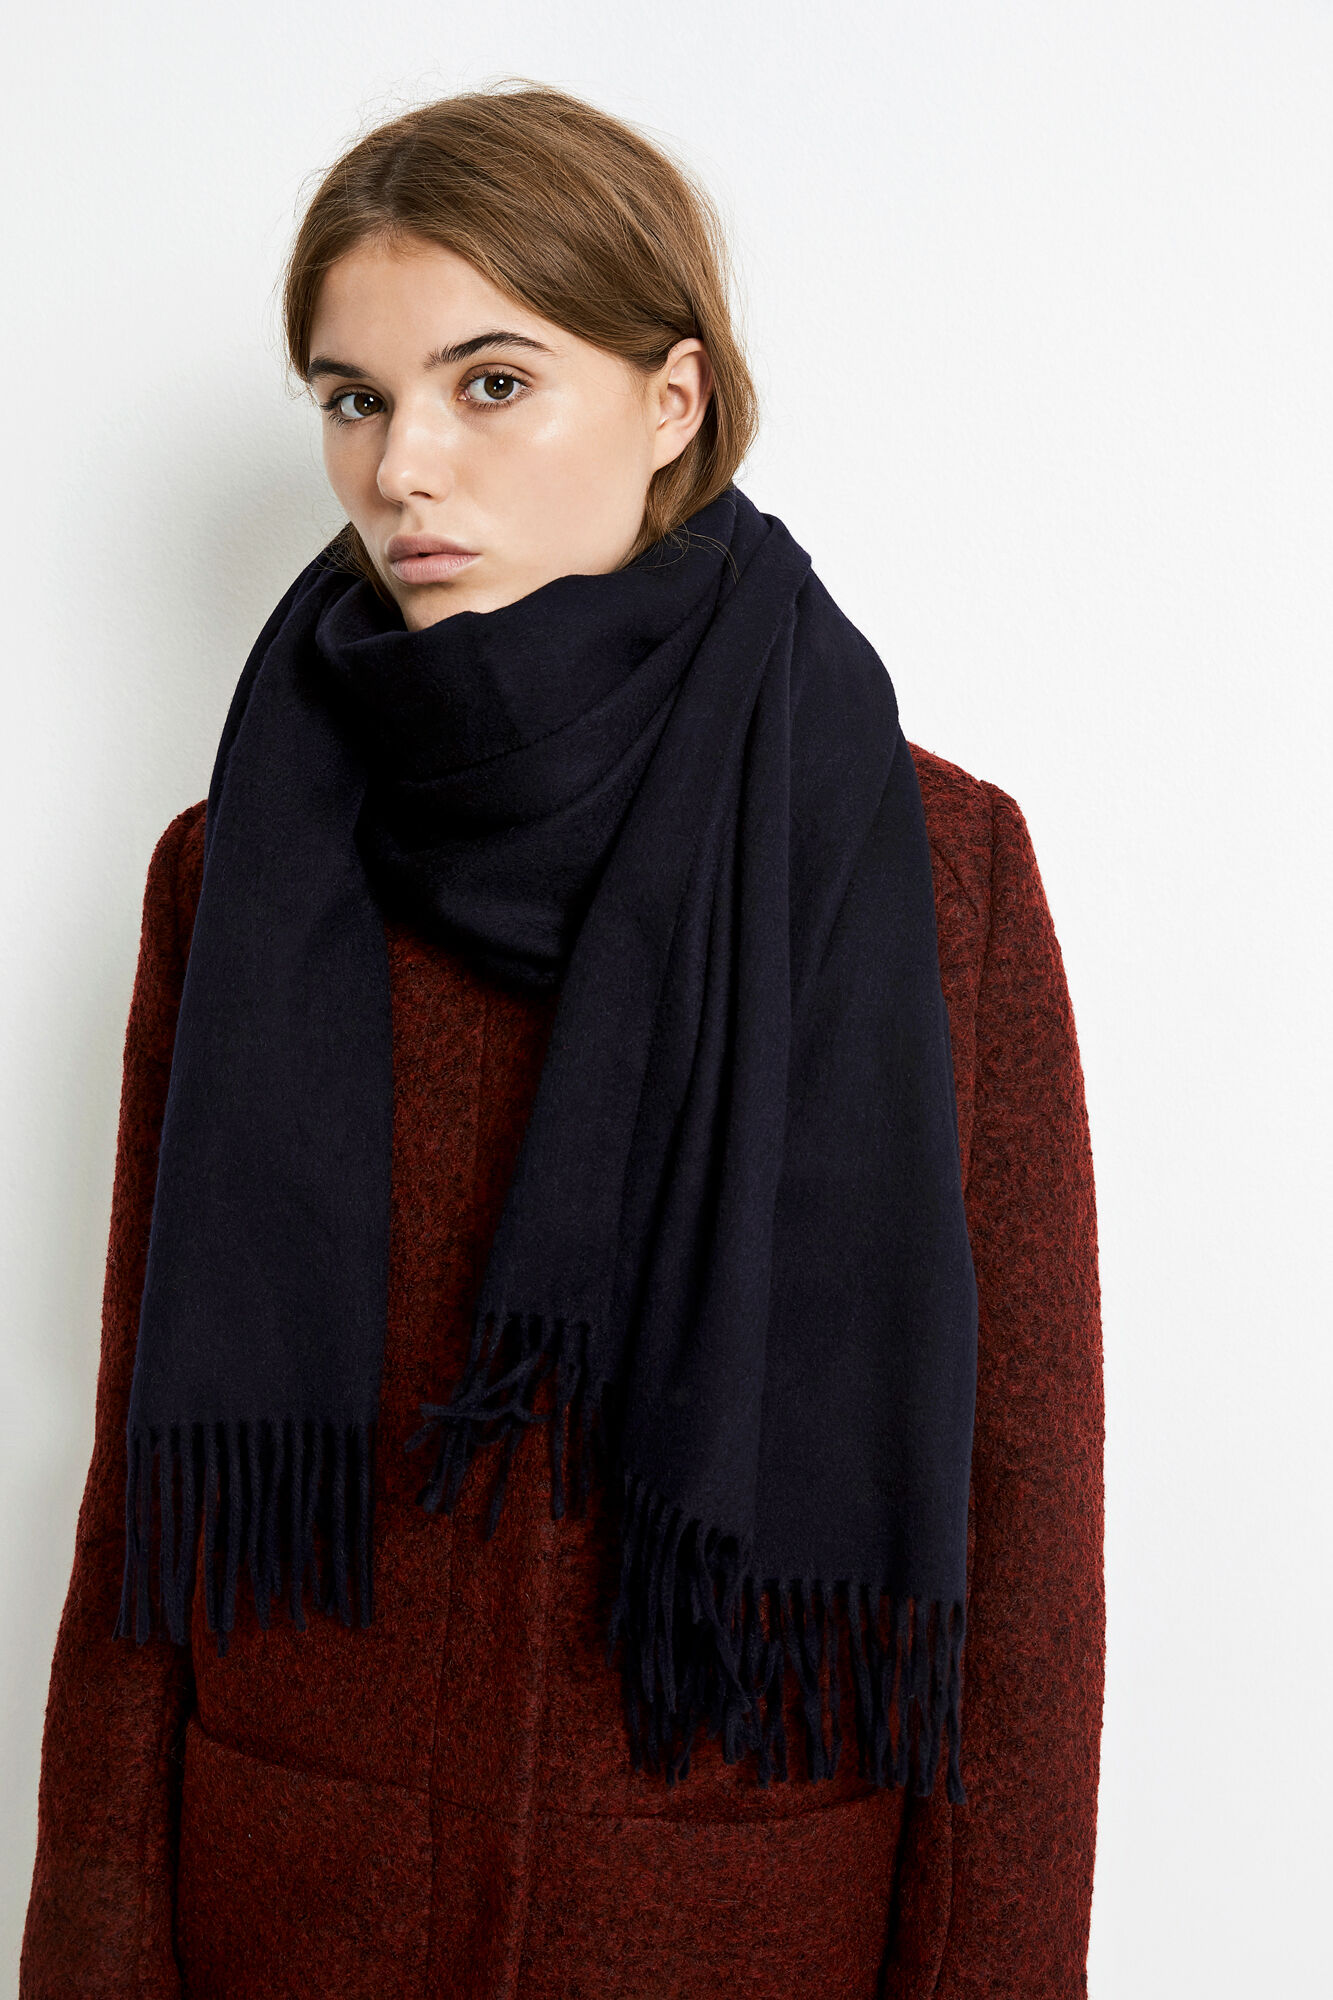 ENNEW WOOL SCARF, BLACK